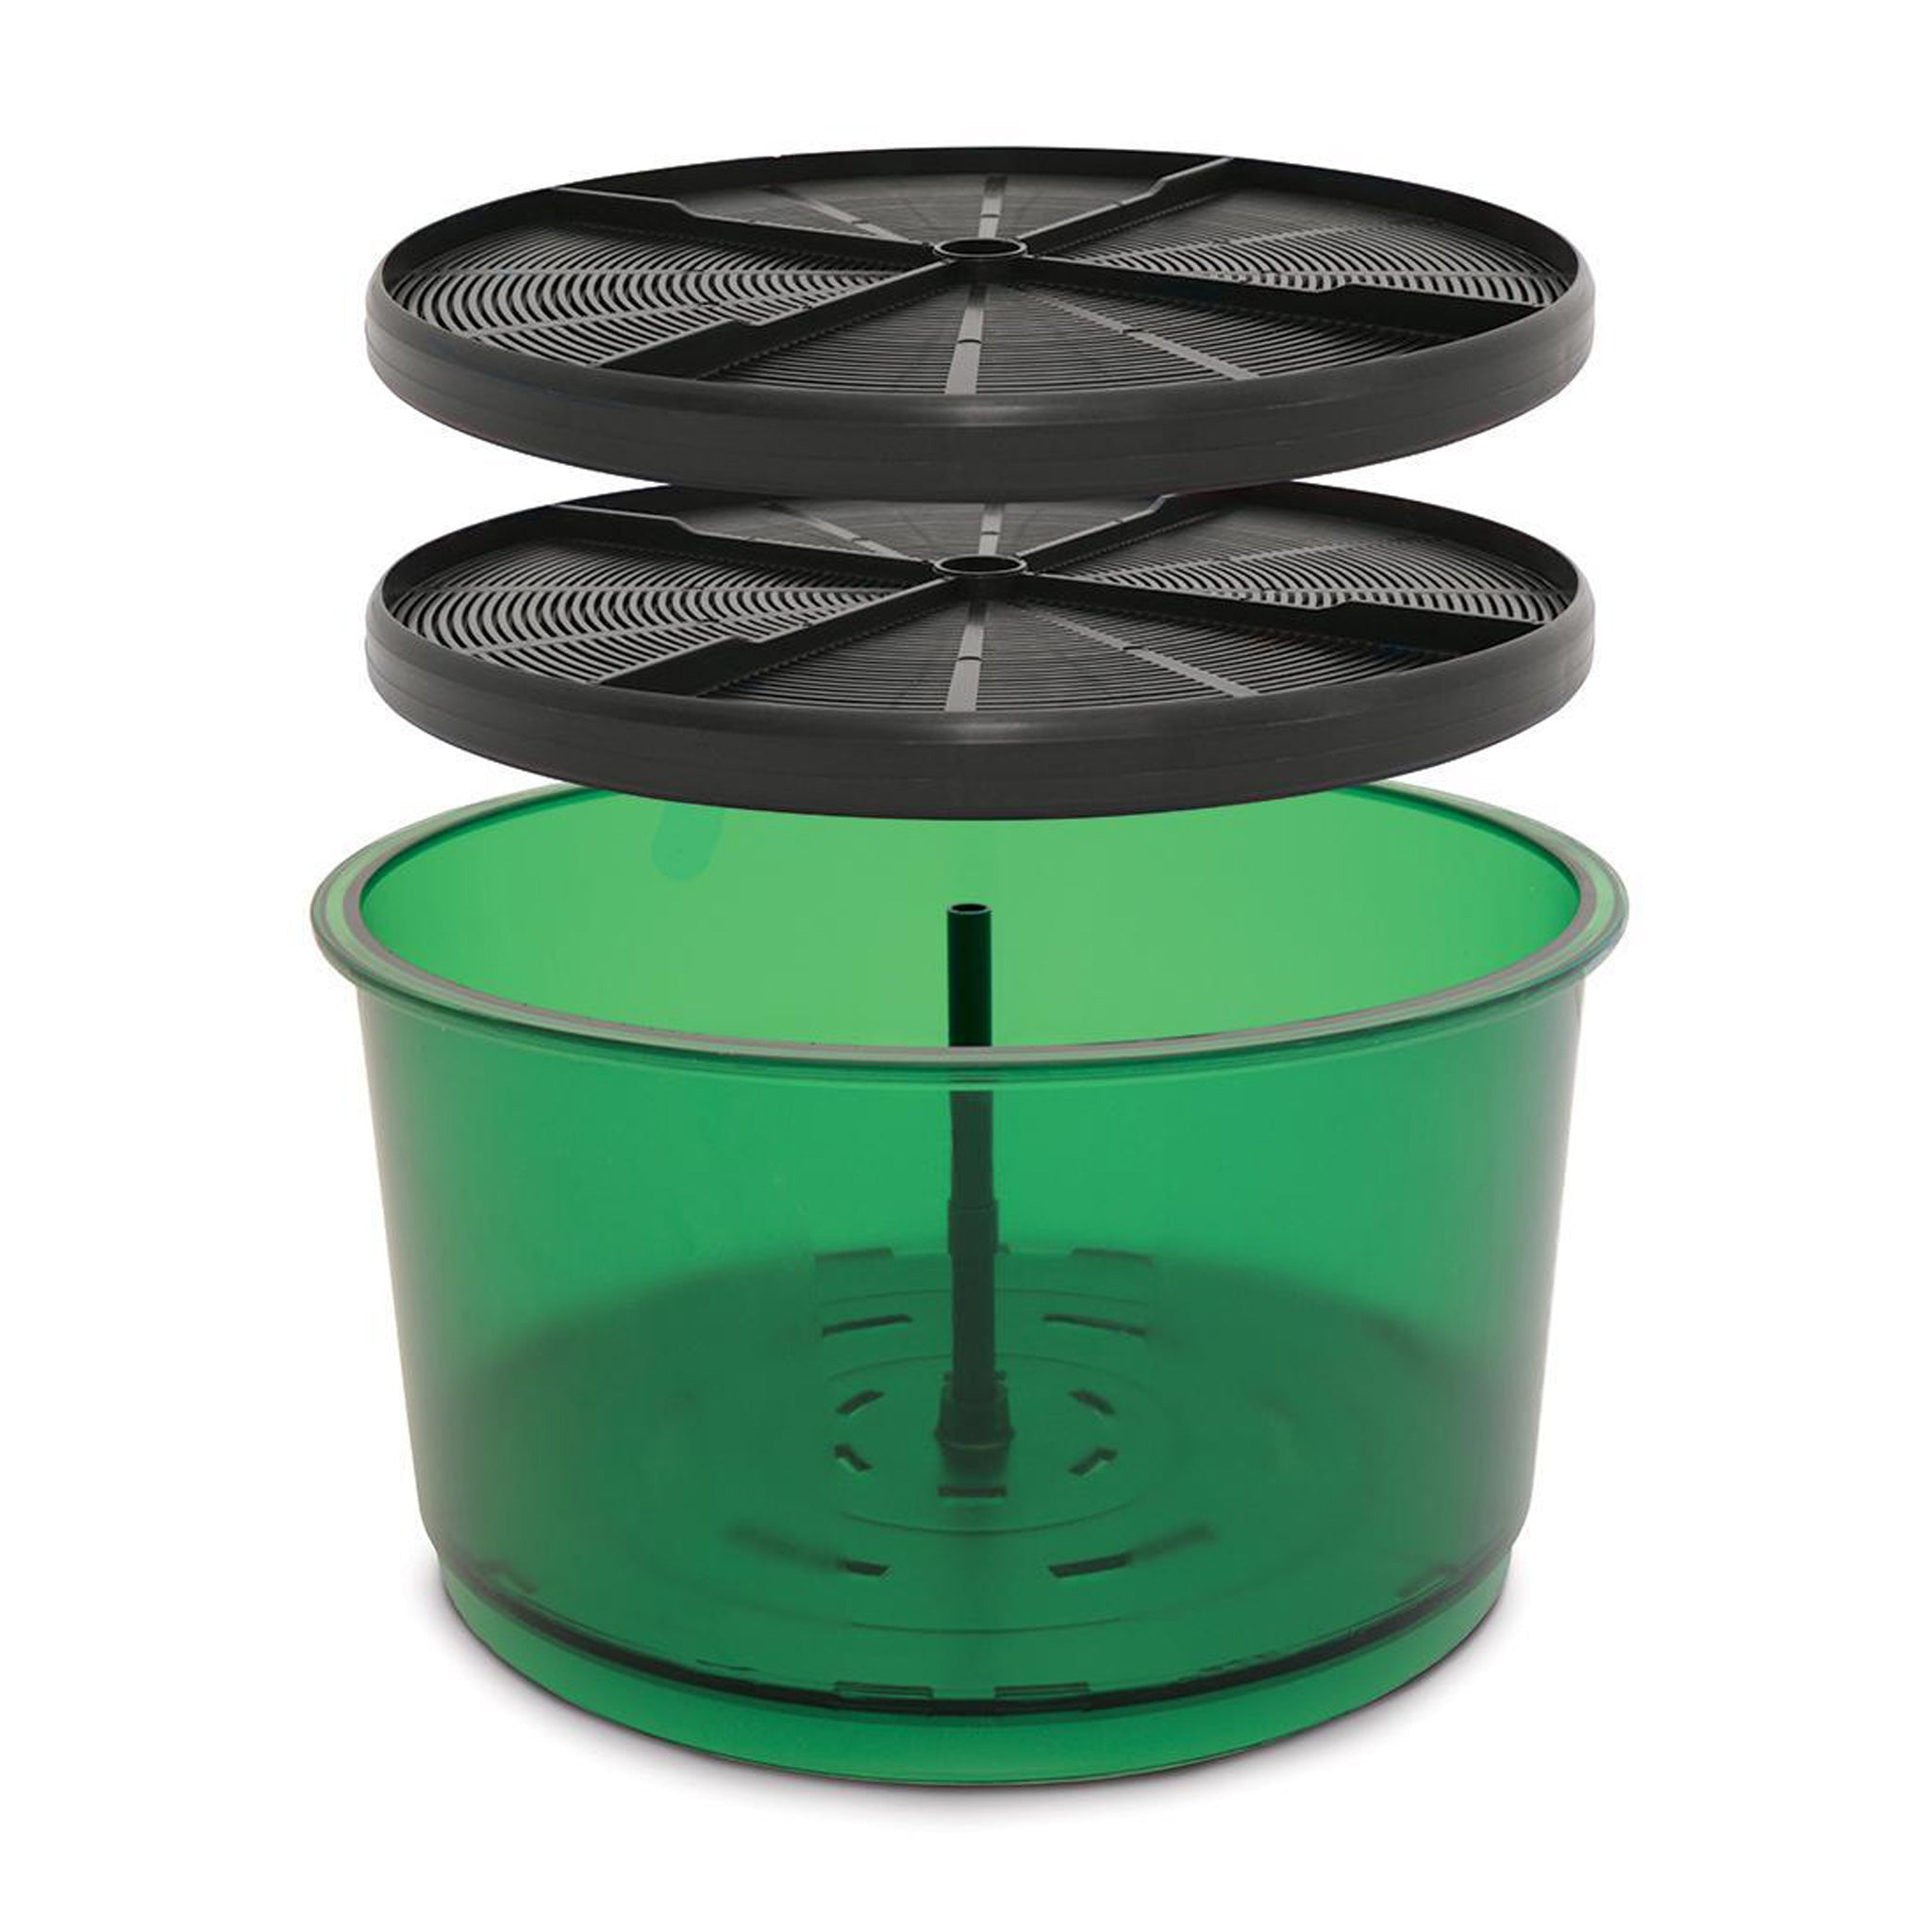 The Freshlife® Extra Barrel Set instantly doubles the sprouting capacity of the Freshlife® Sprouter. The Extra Barrel Set comes with everything you need to double stack your sprouter and increase the amount and variety of sprouts you can grow at a time! Now, with the new Freshlife® 3000, you can have up to three sprouting barrels.